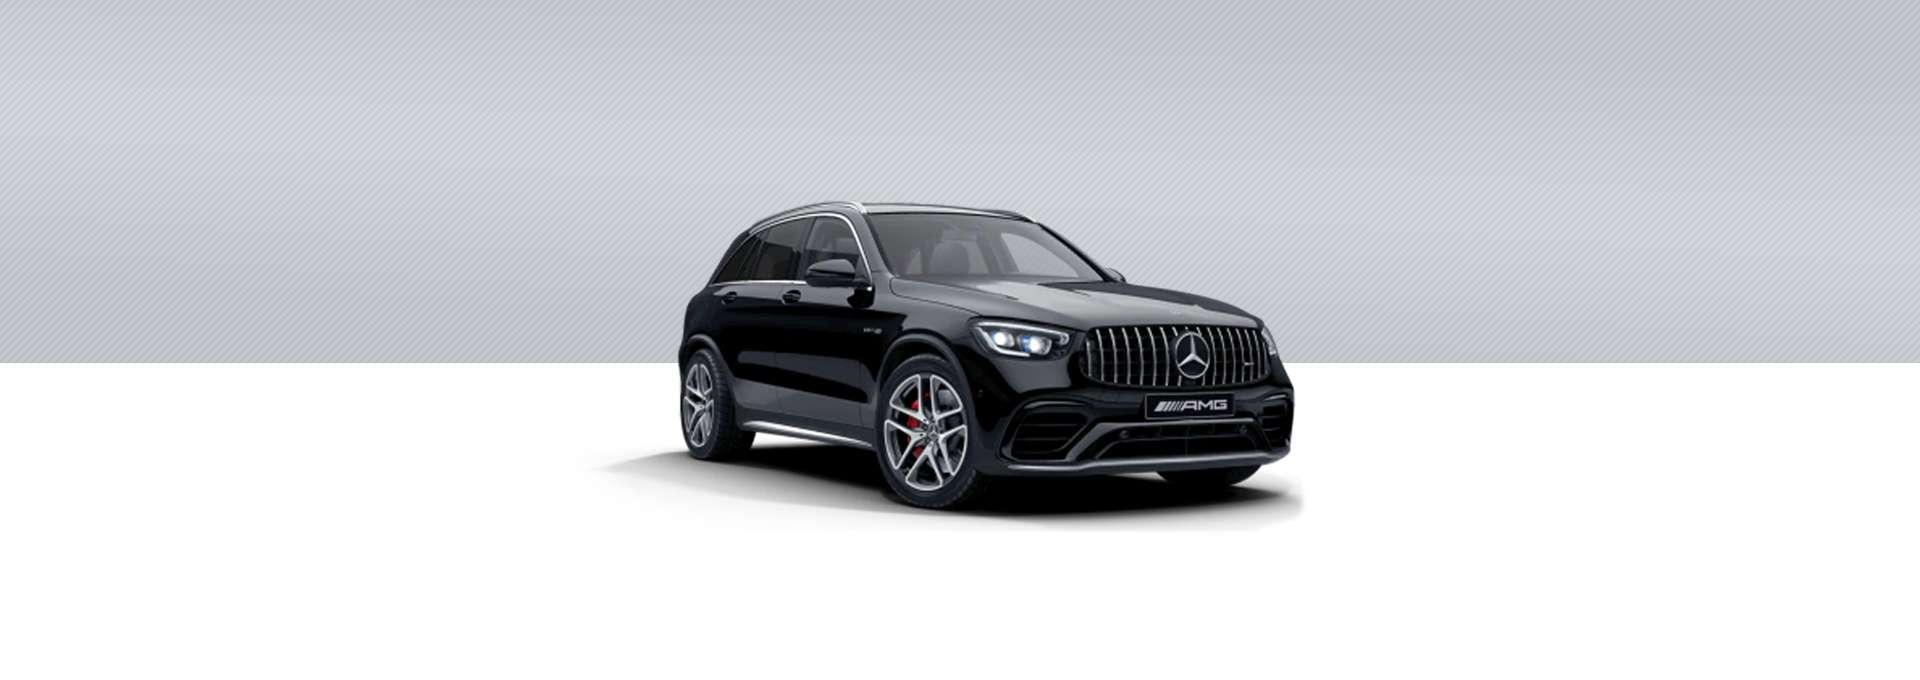 Mercedes Benz AMG GLC SUV